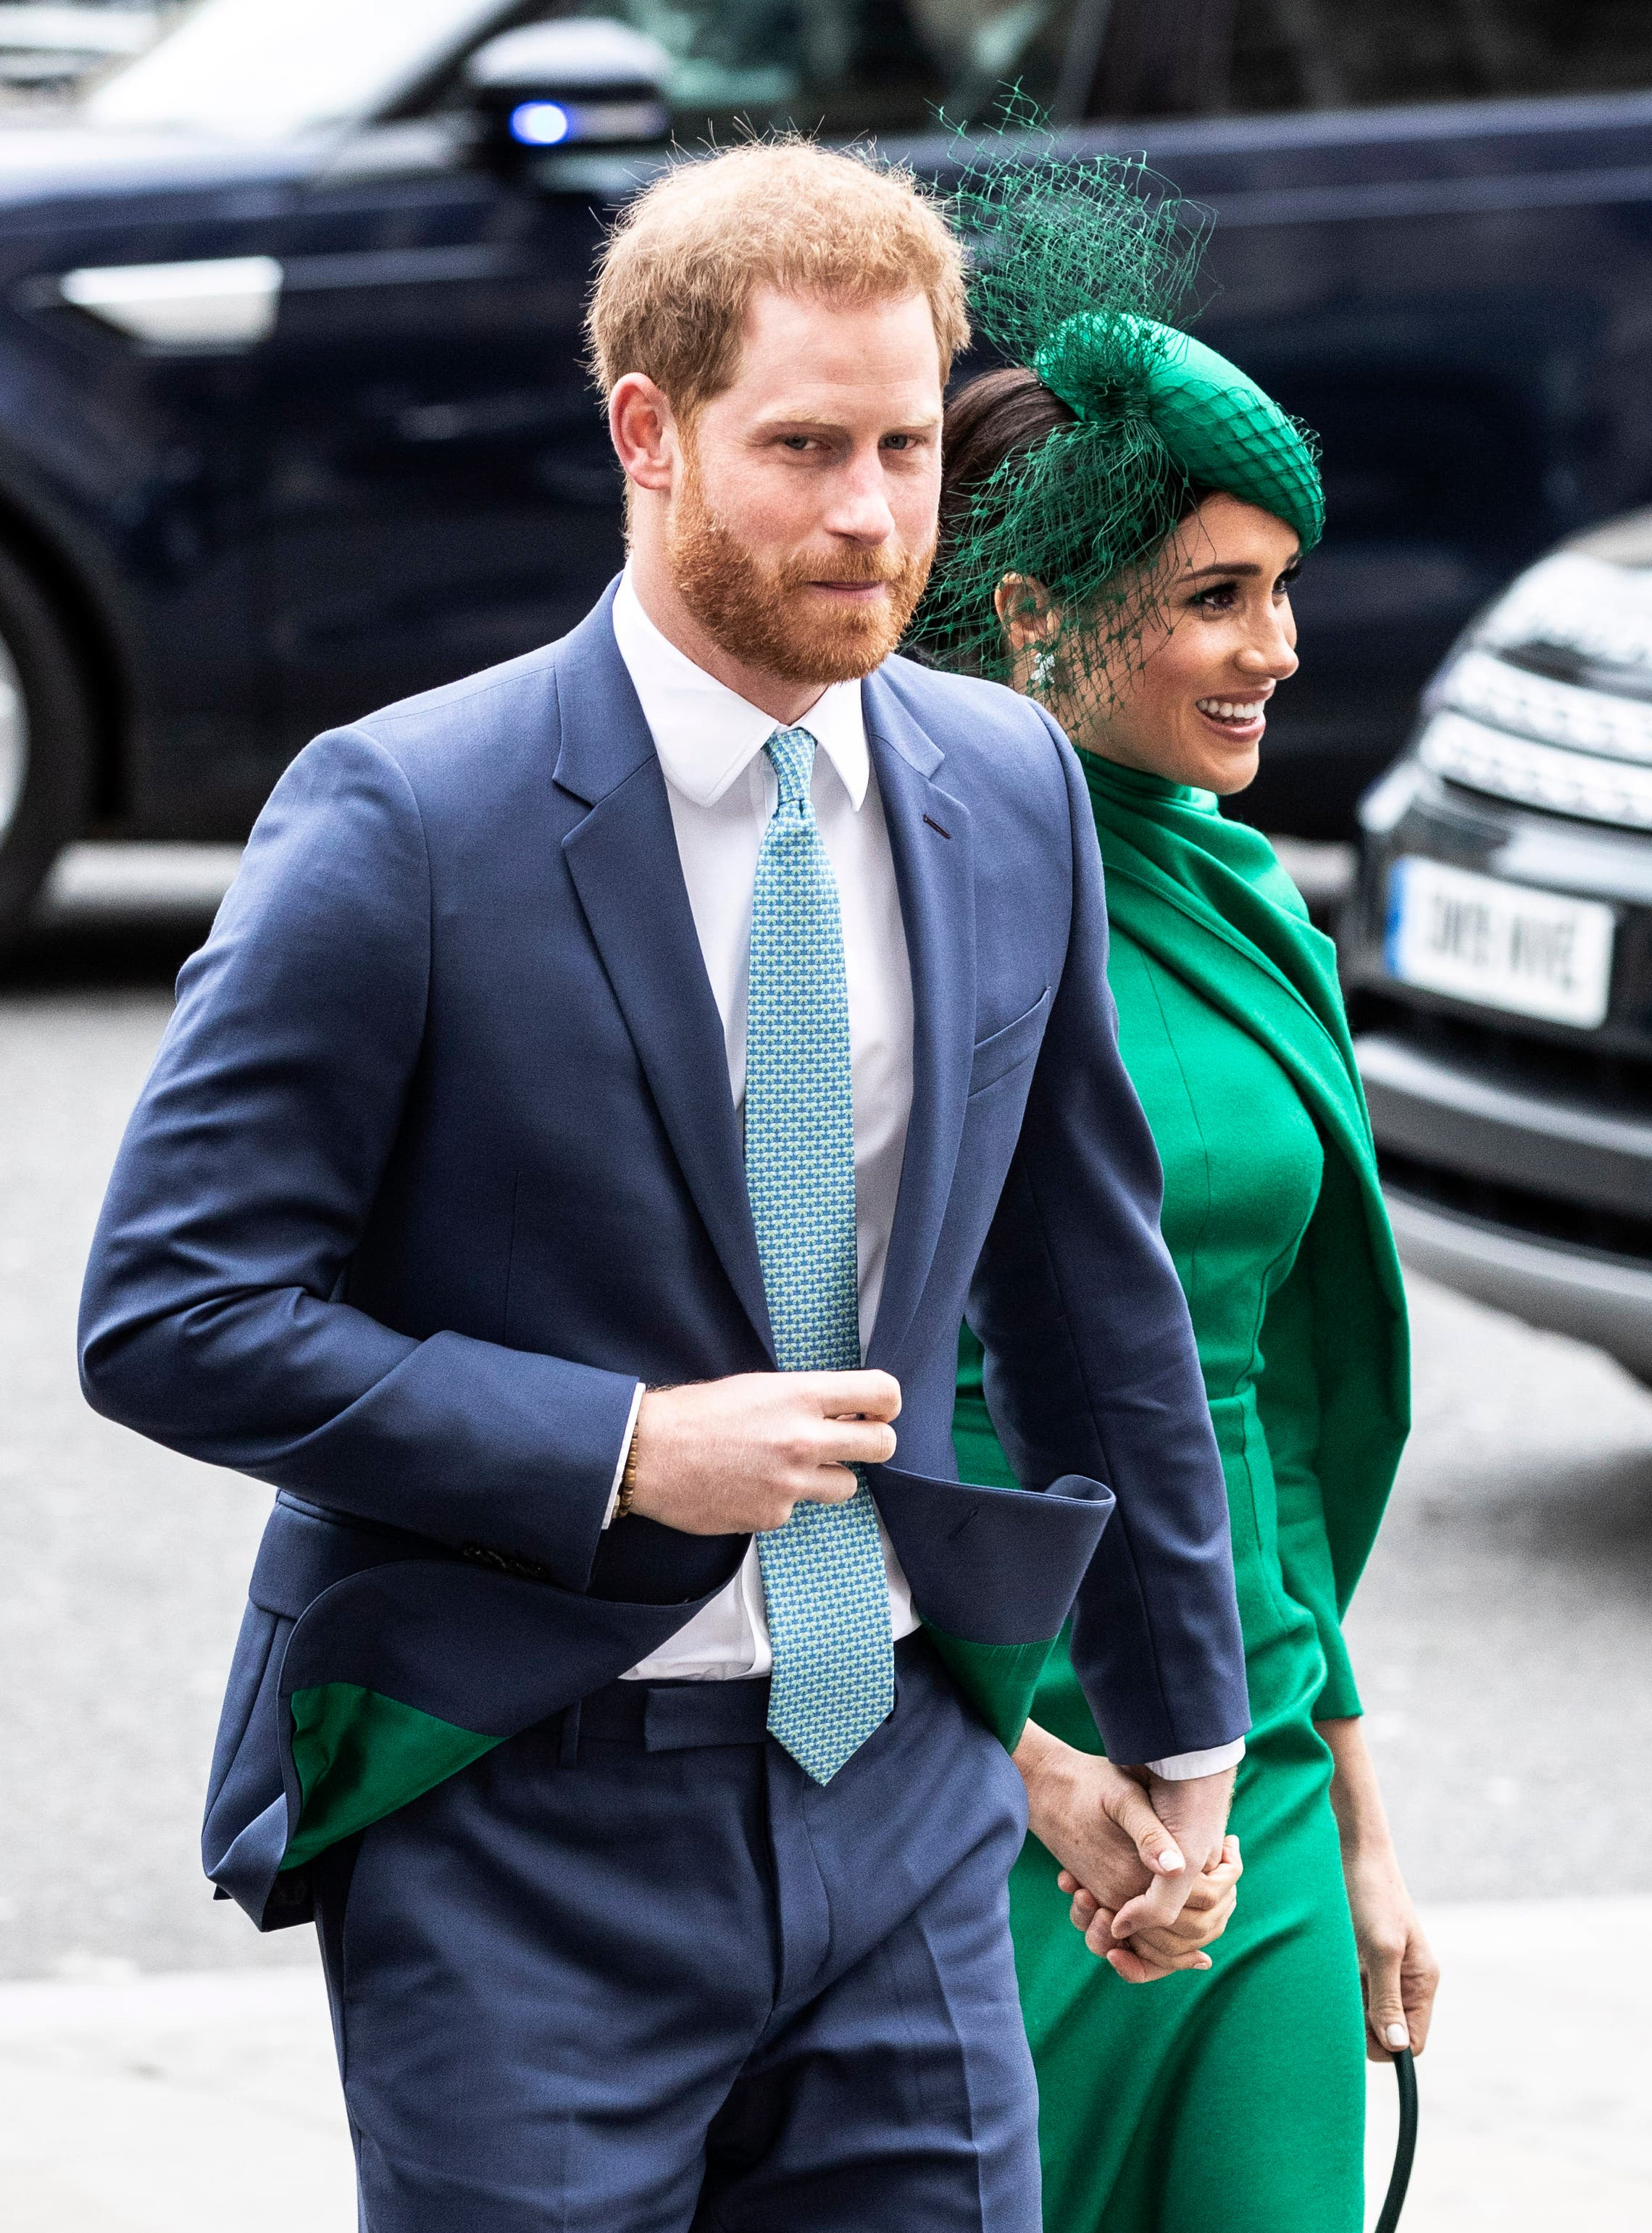 Britain's Prince Harry and Meghan, Duchess of Sussex, arrive to attend the annual Commonwealth Service at Westminster Abbey in London, on Monday March 9, 2020. (AP)